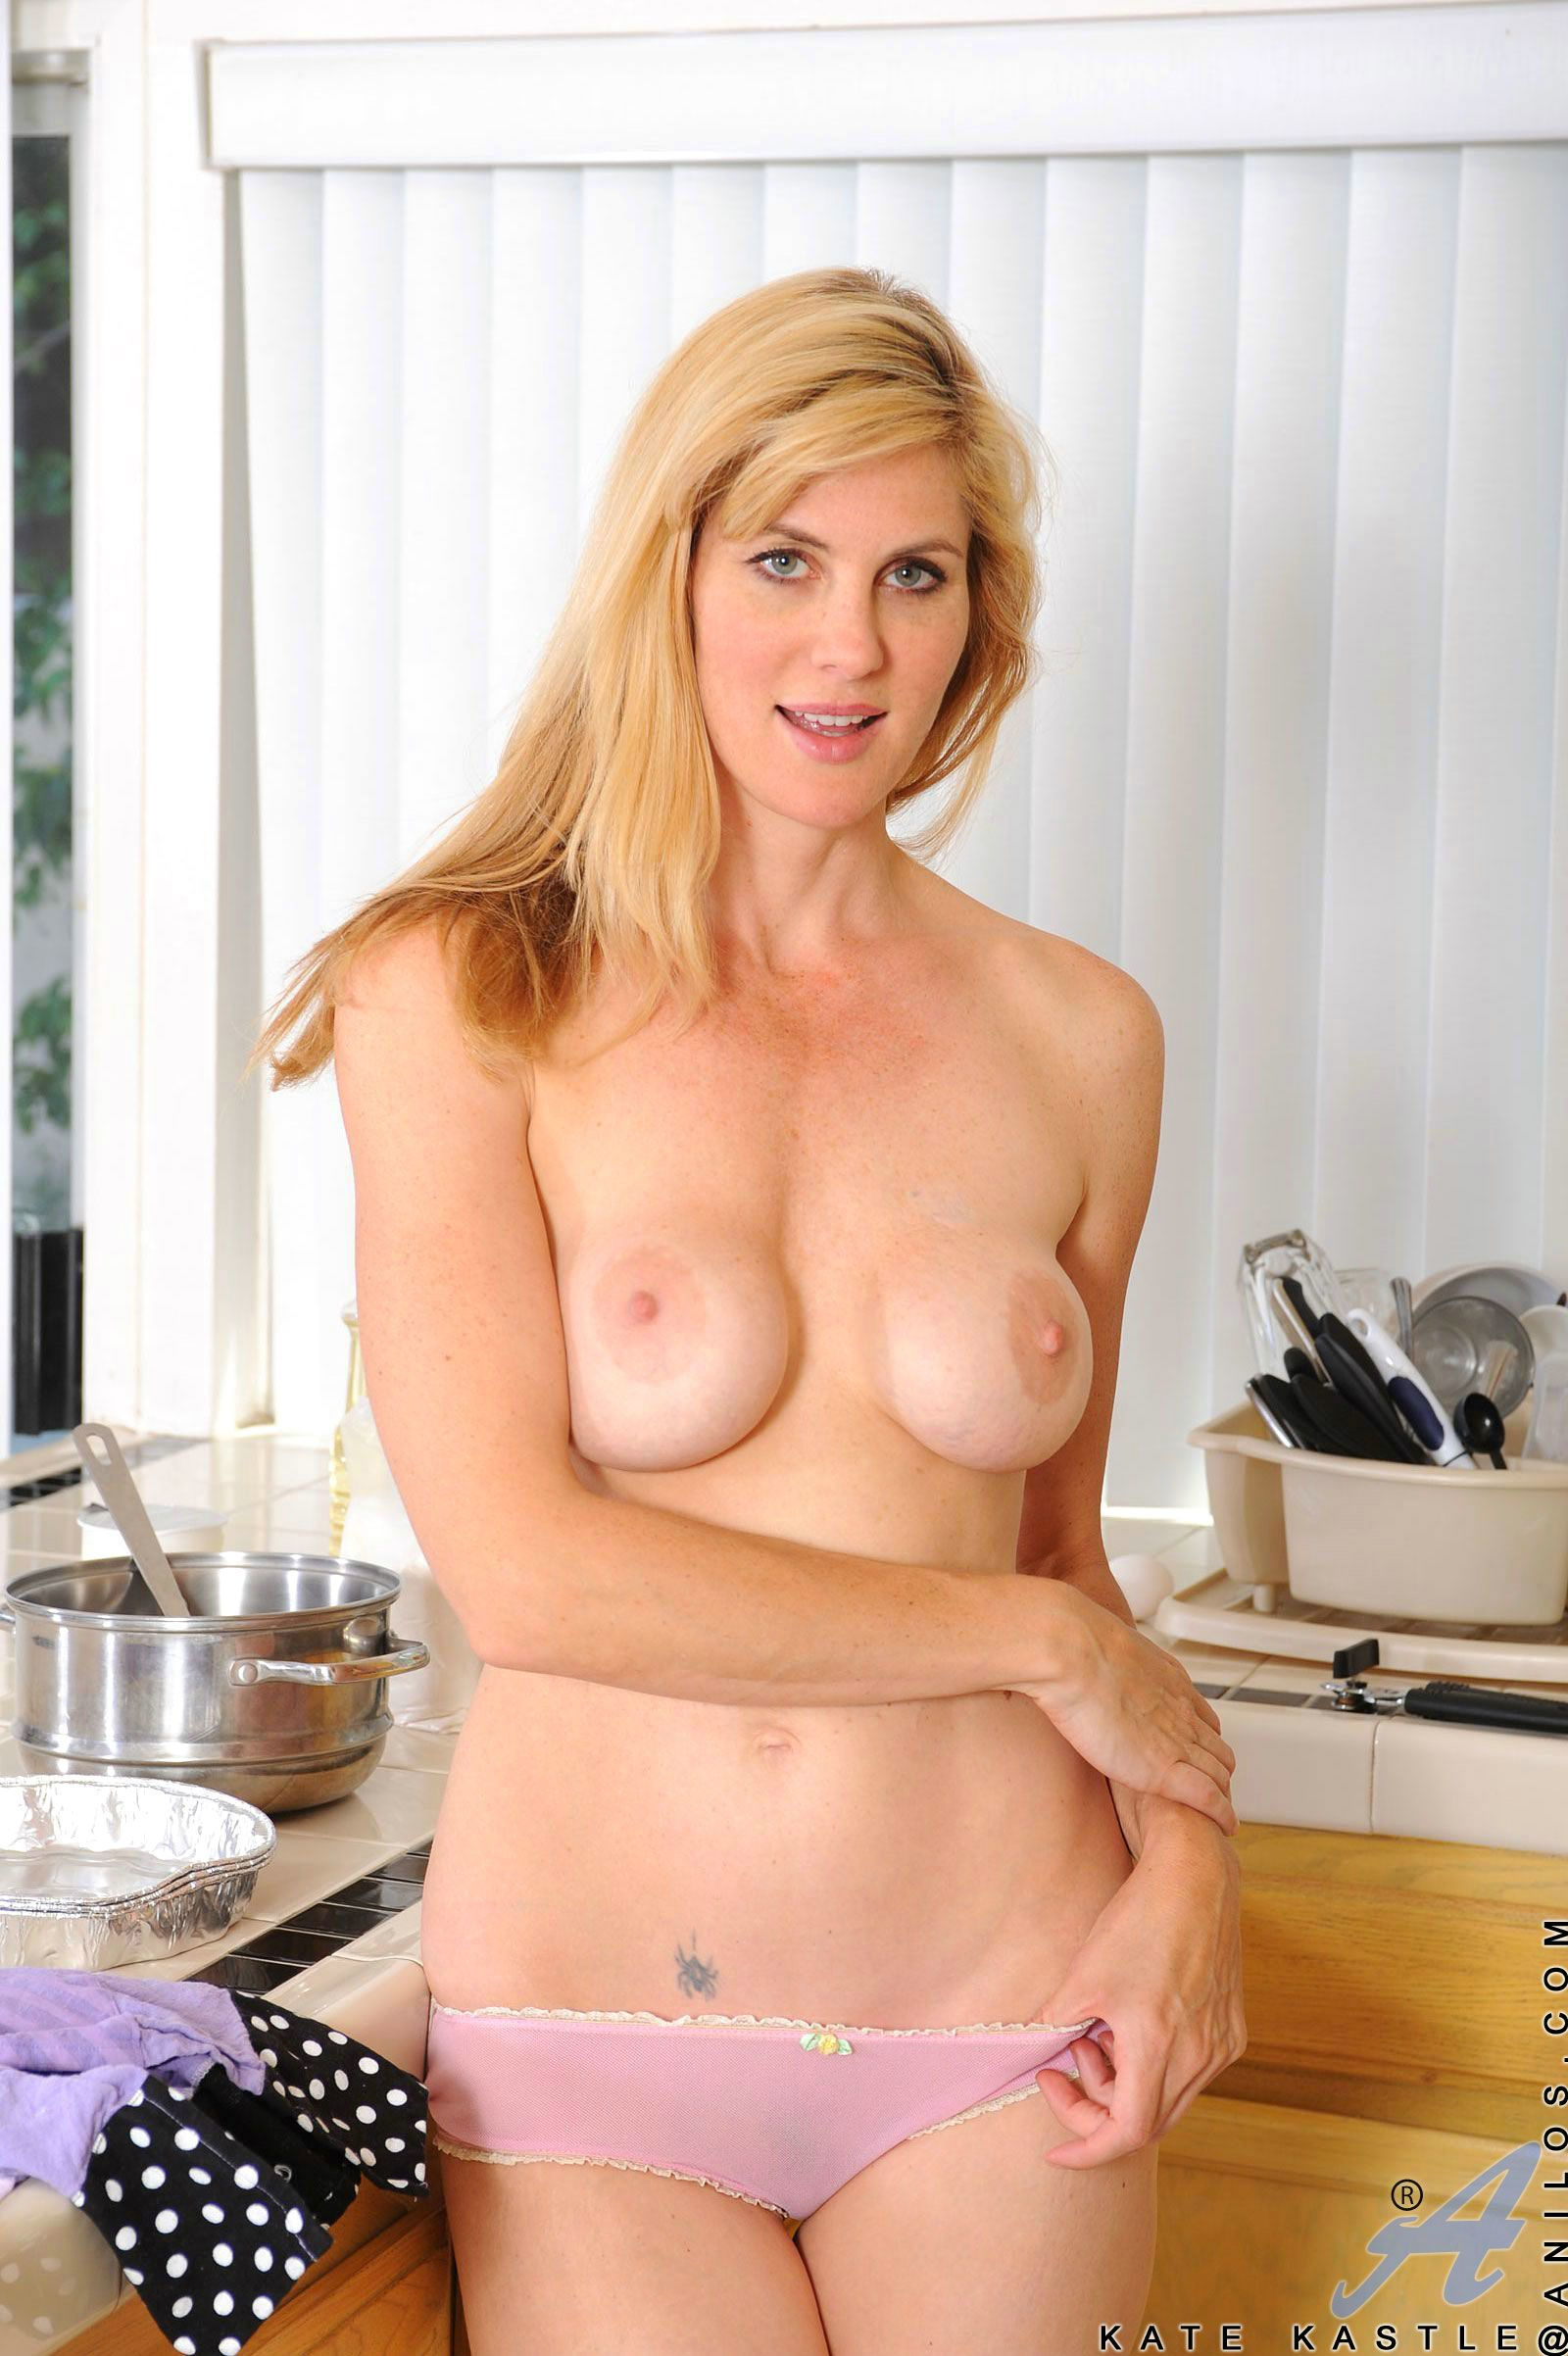 Kate Kastle Posing Naked And Sensually Touches Her Pussy -8874